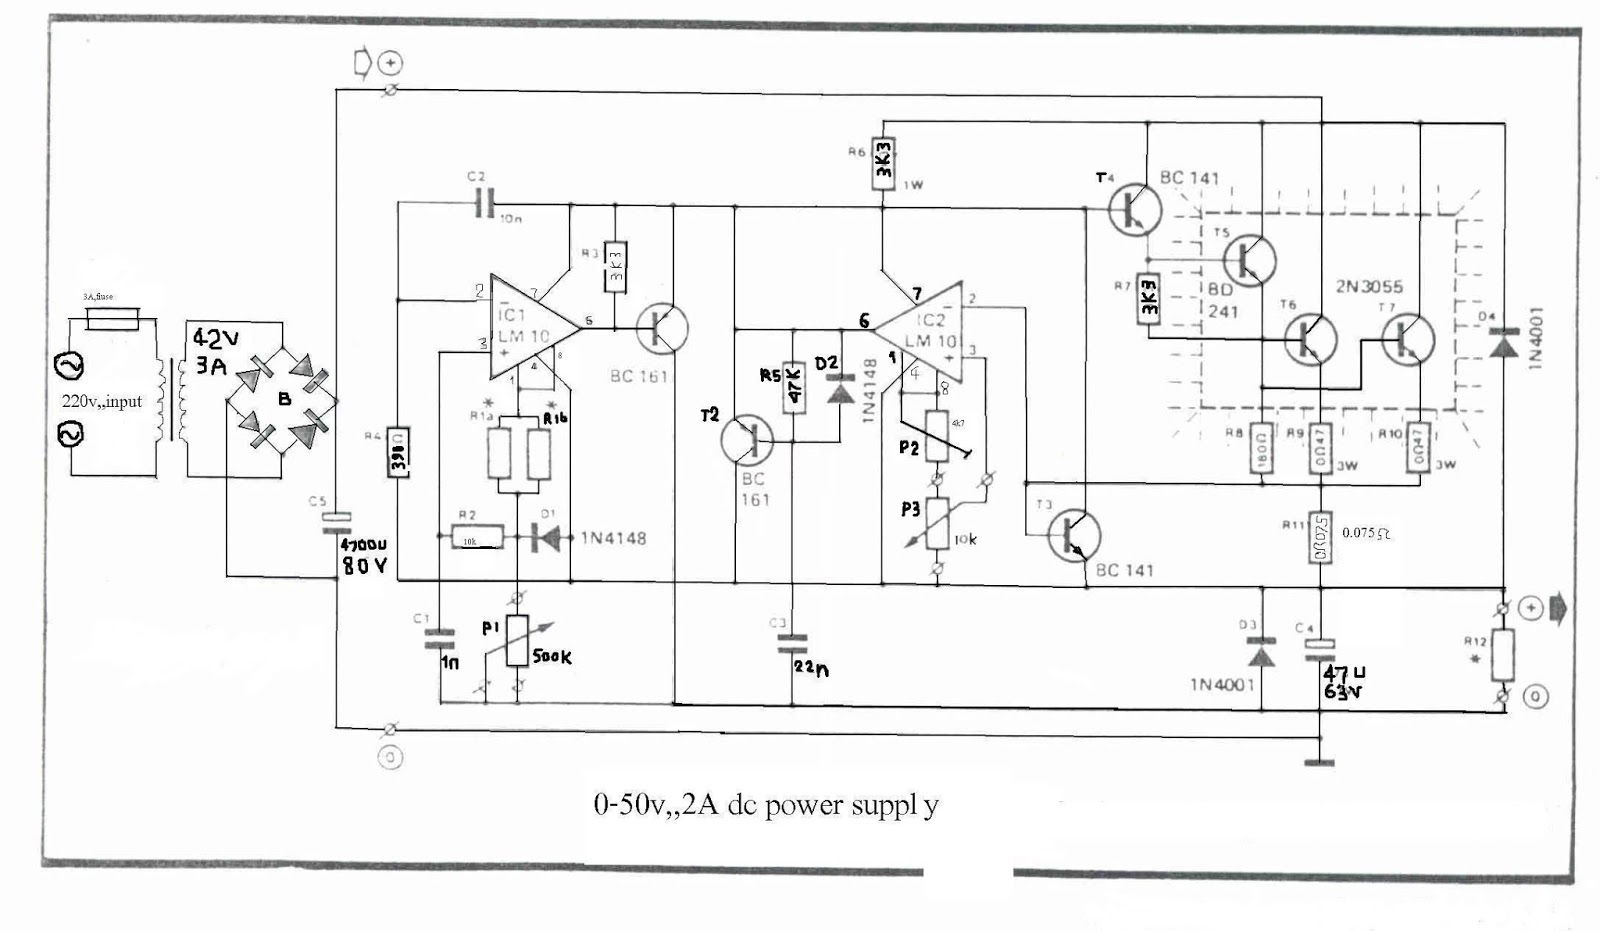 October 2014 Circuit Knowledge Resistor R3 Which Is Sufficient To Trigger Triac Tr1 Diagram Op Amp Output Controls T1 That Not Let Ripple Of Voltaget1 Increase Or Decrease Ampere R6 And Control The Voltage T5 T4